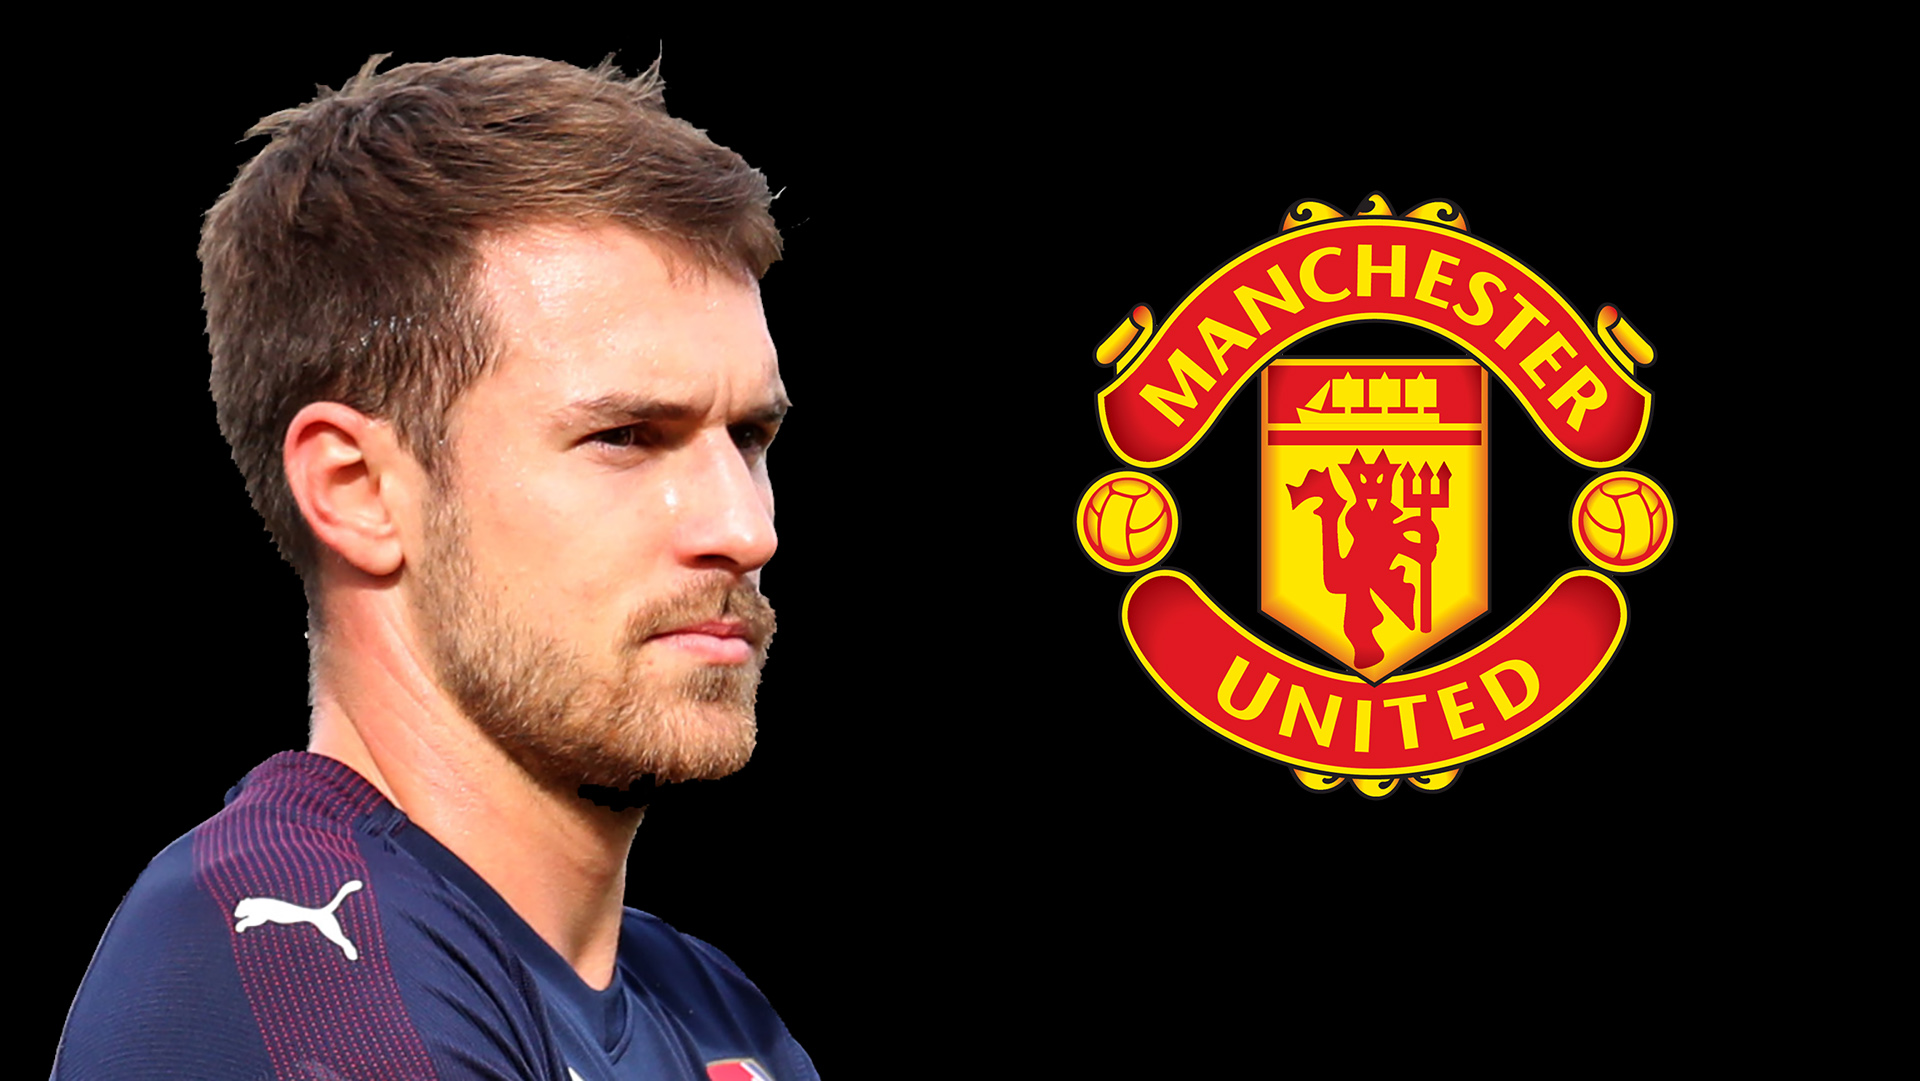 Man united latest news live today